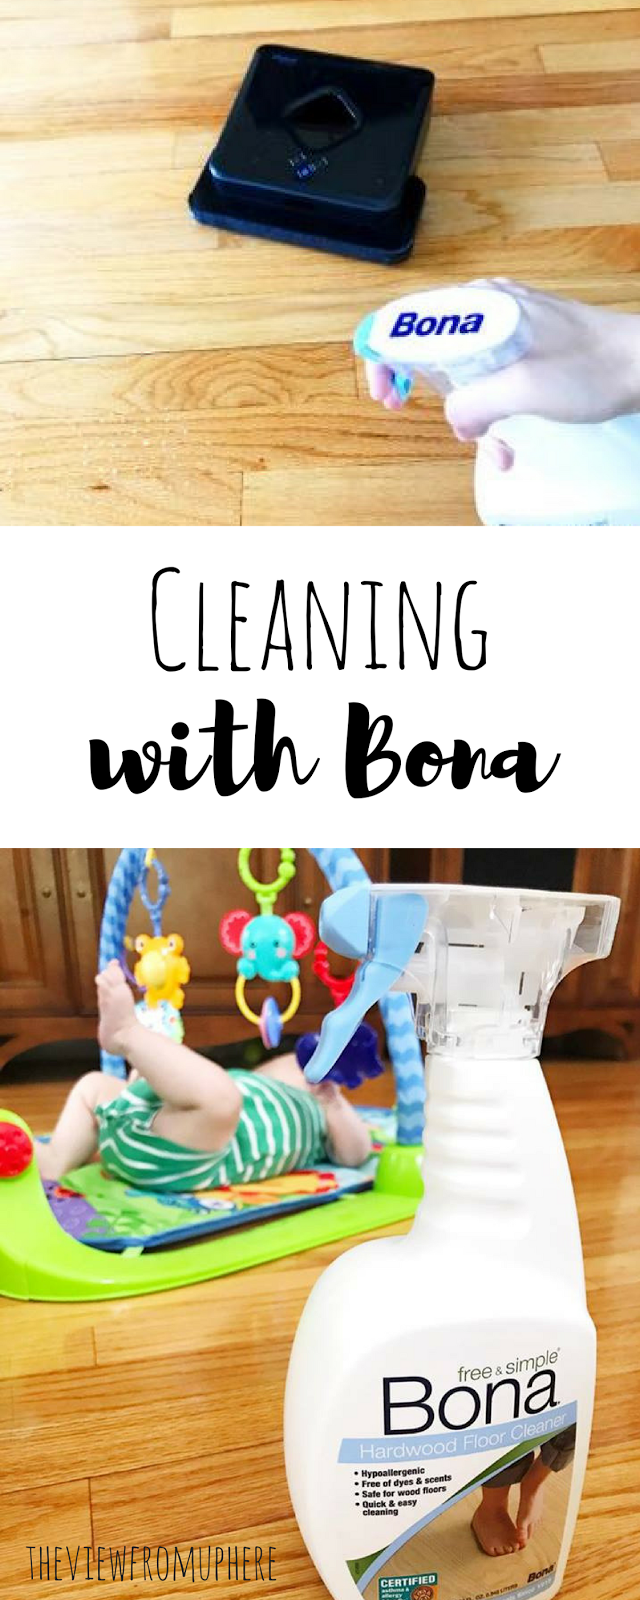 Bona Free and Simple, Clean with Kids, Kid Chores